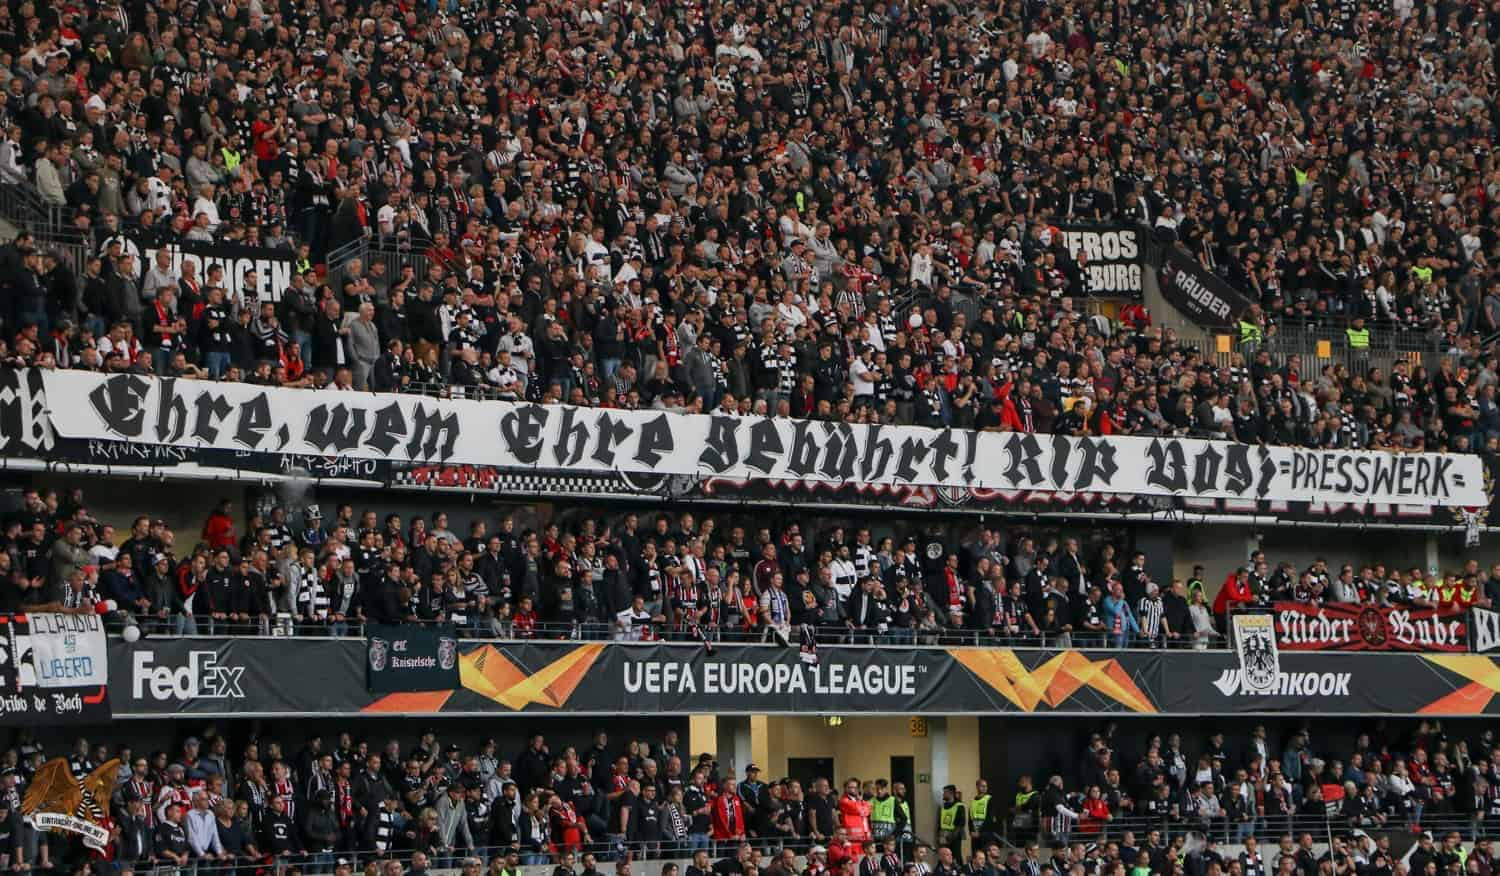 19-20-europaleague-eintracht-frankfurt-arsenal-london-22